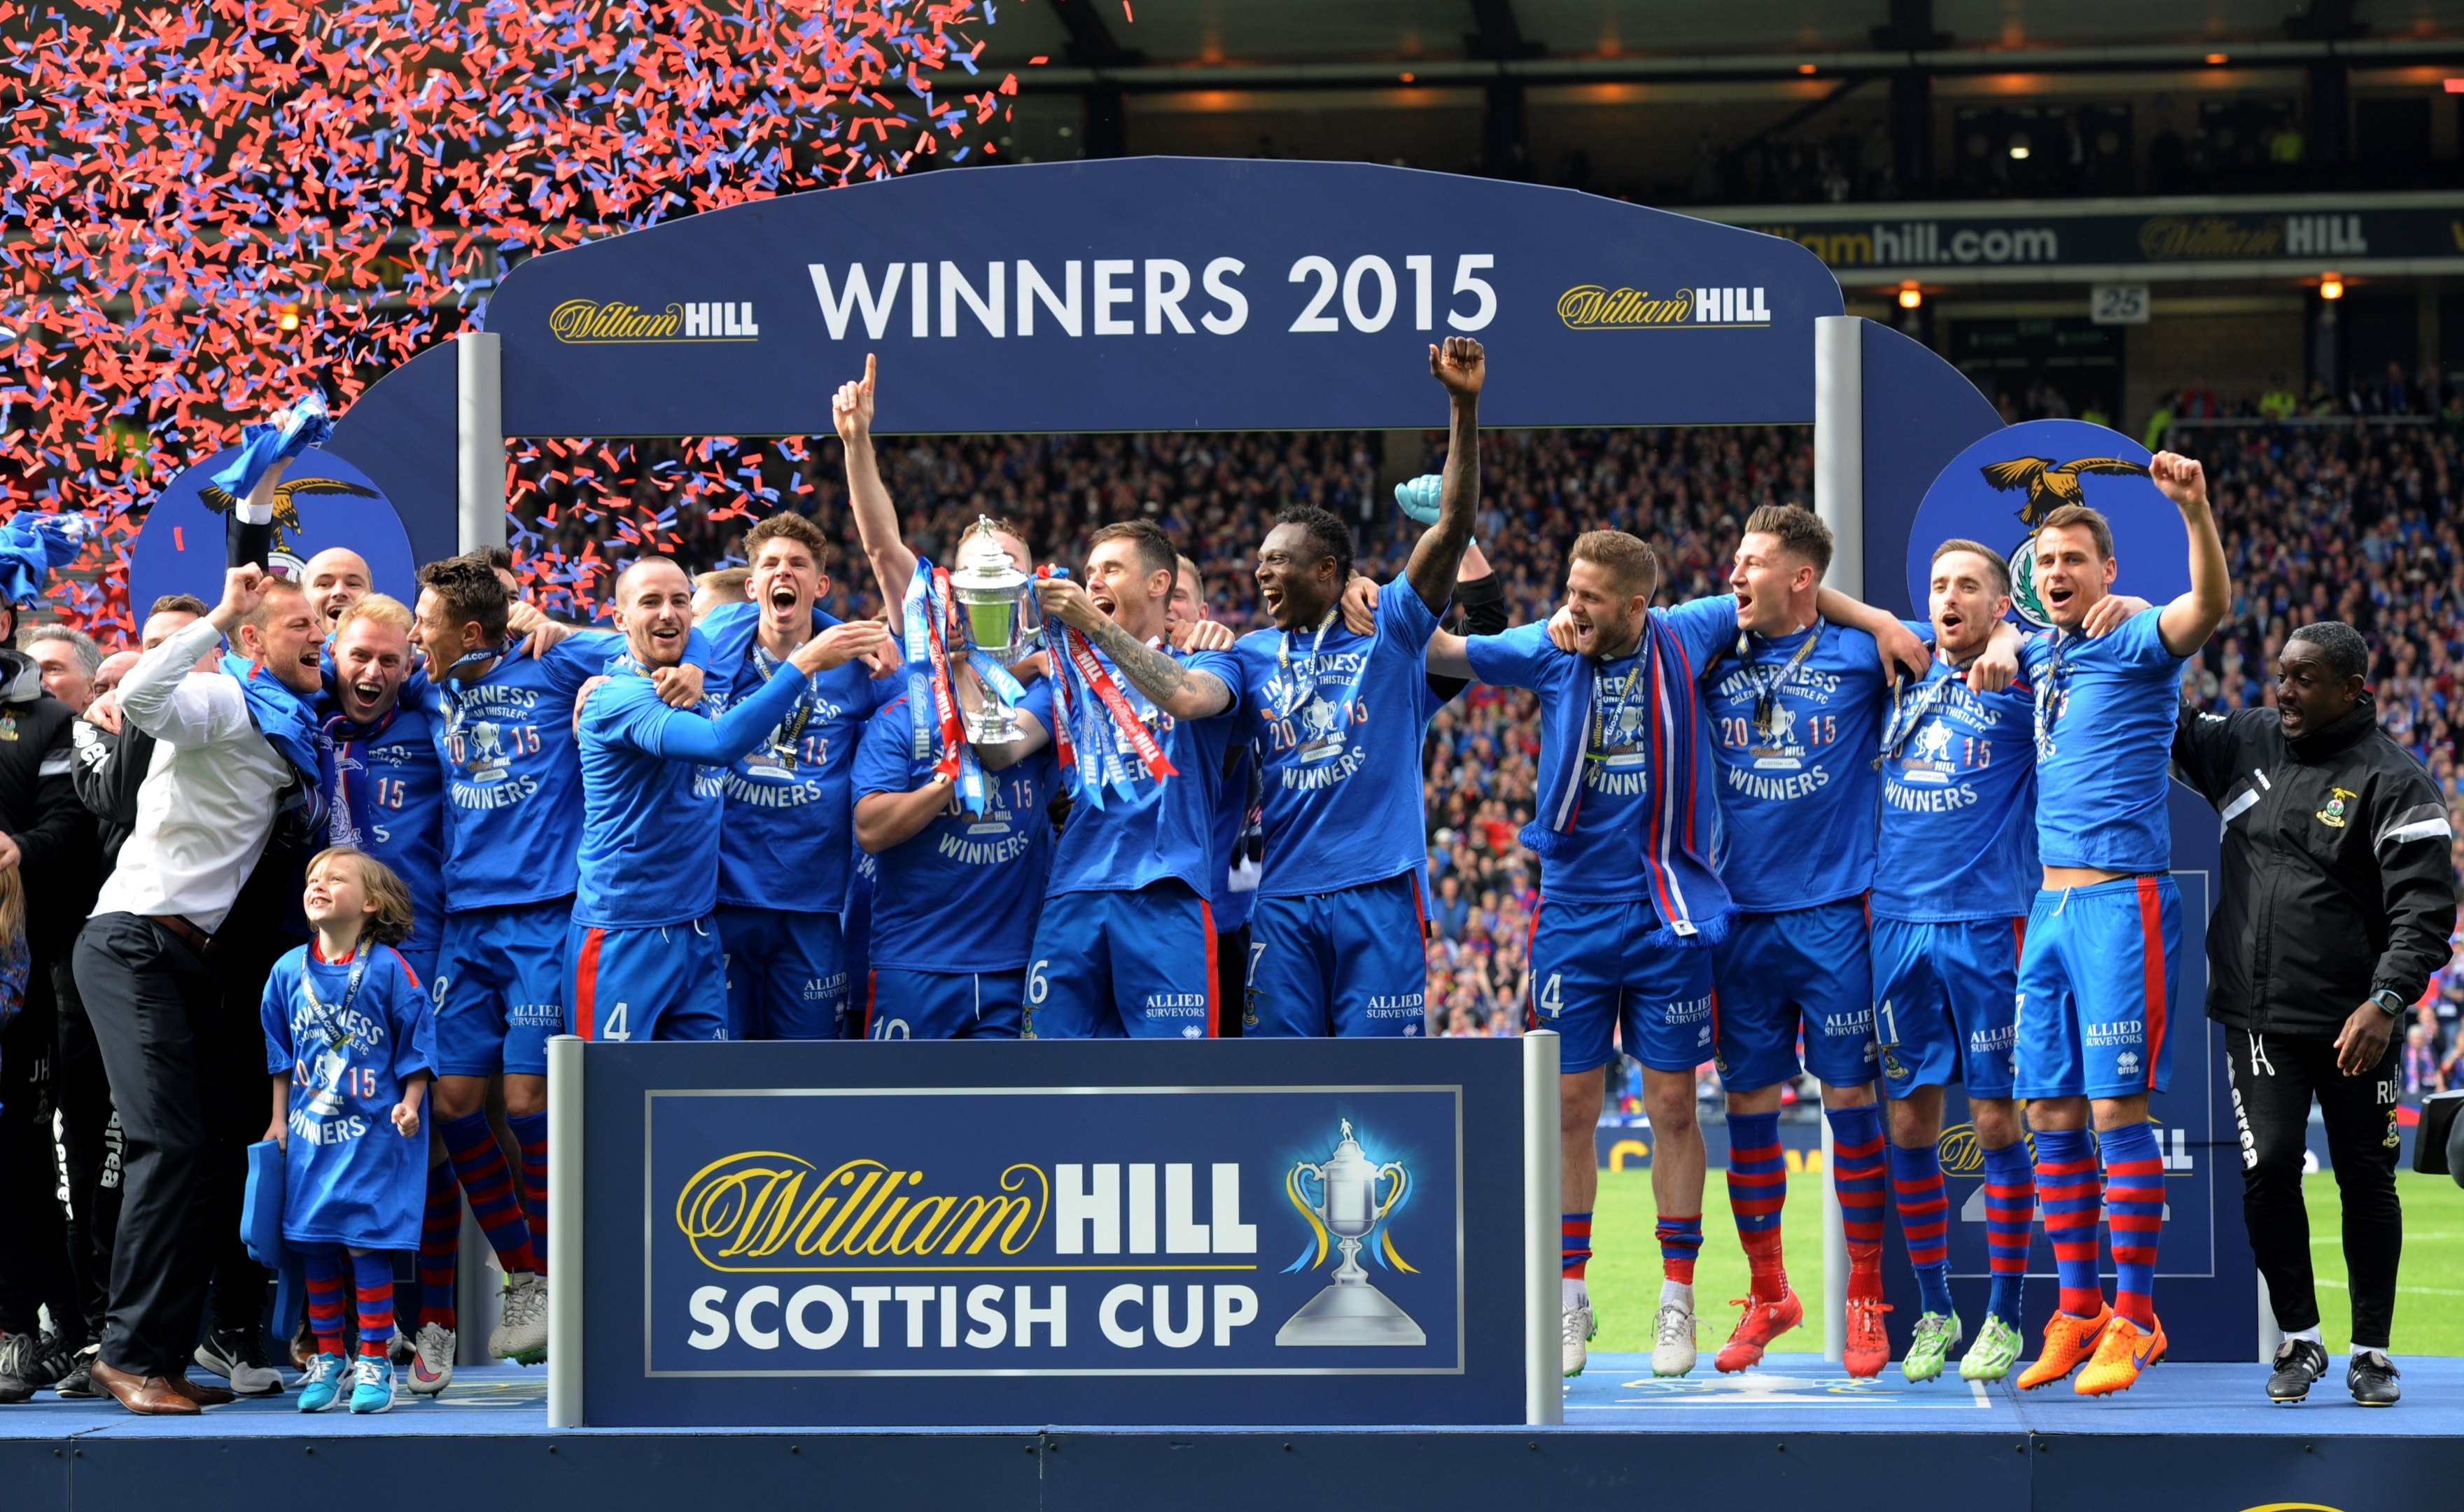 Now you see them... The Caley Thistle players celebrate with the Scottish Cup. Picture by Kenny Elrick